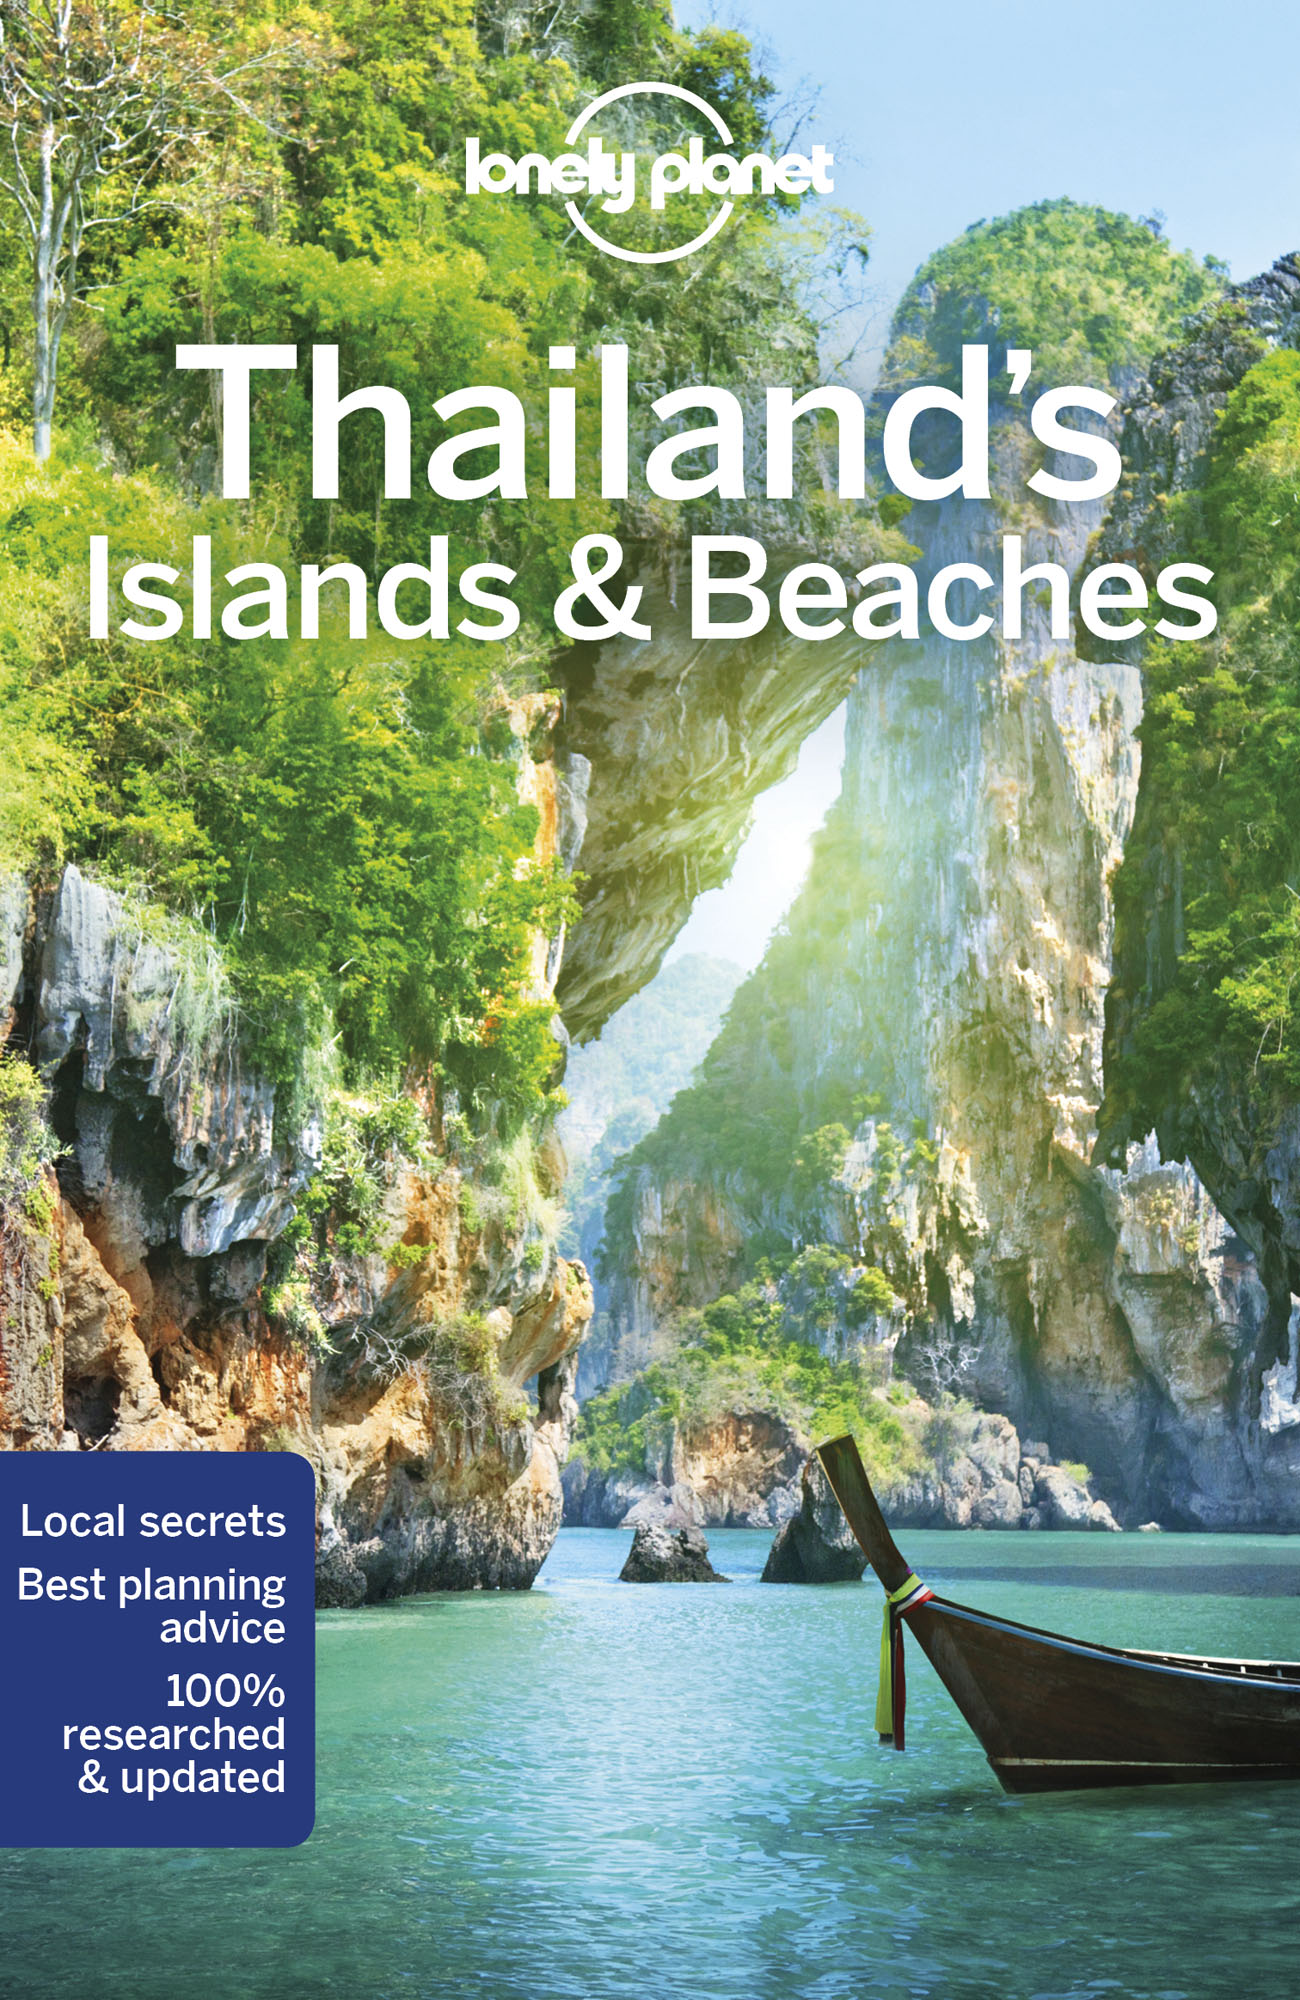 Ostrovy Thajska (Thailand´s Islands & Beaches) průvodce 11th 2018 Lonely Planet